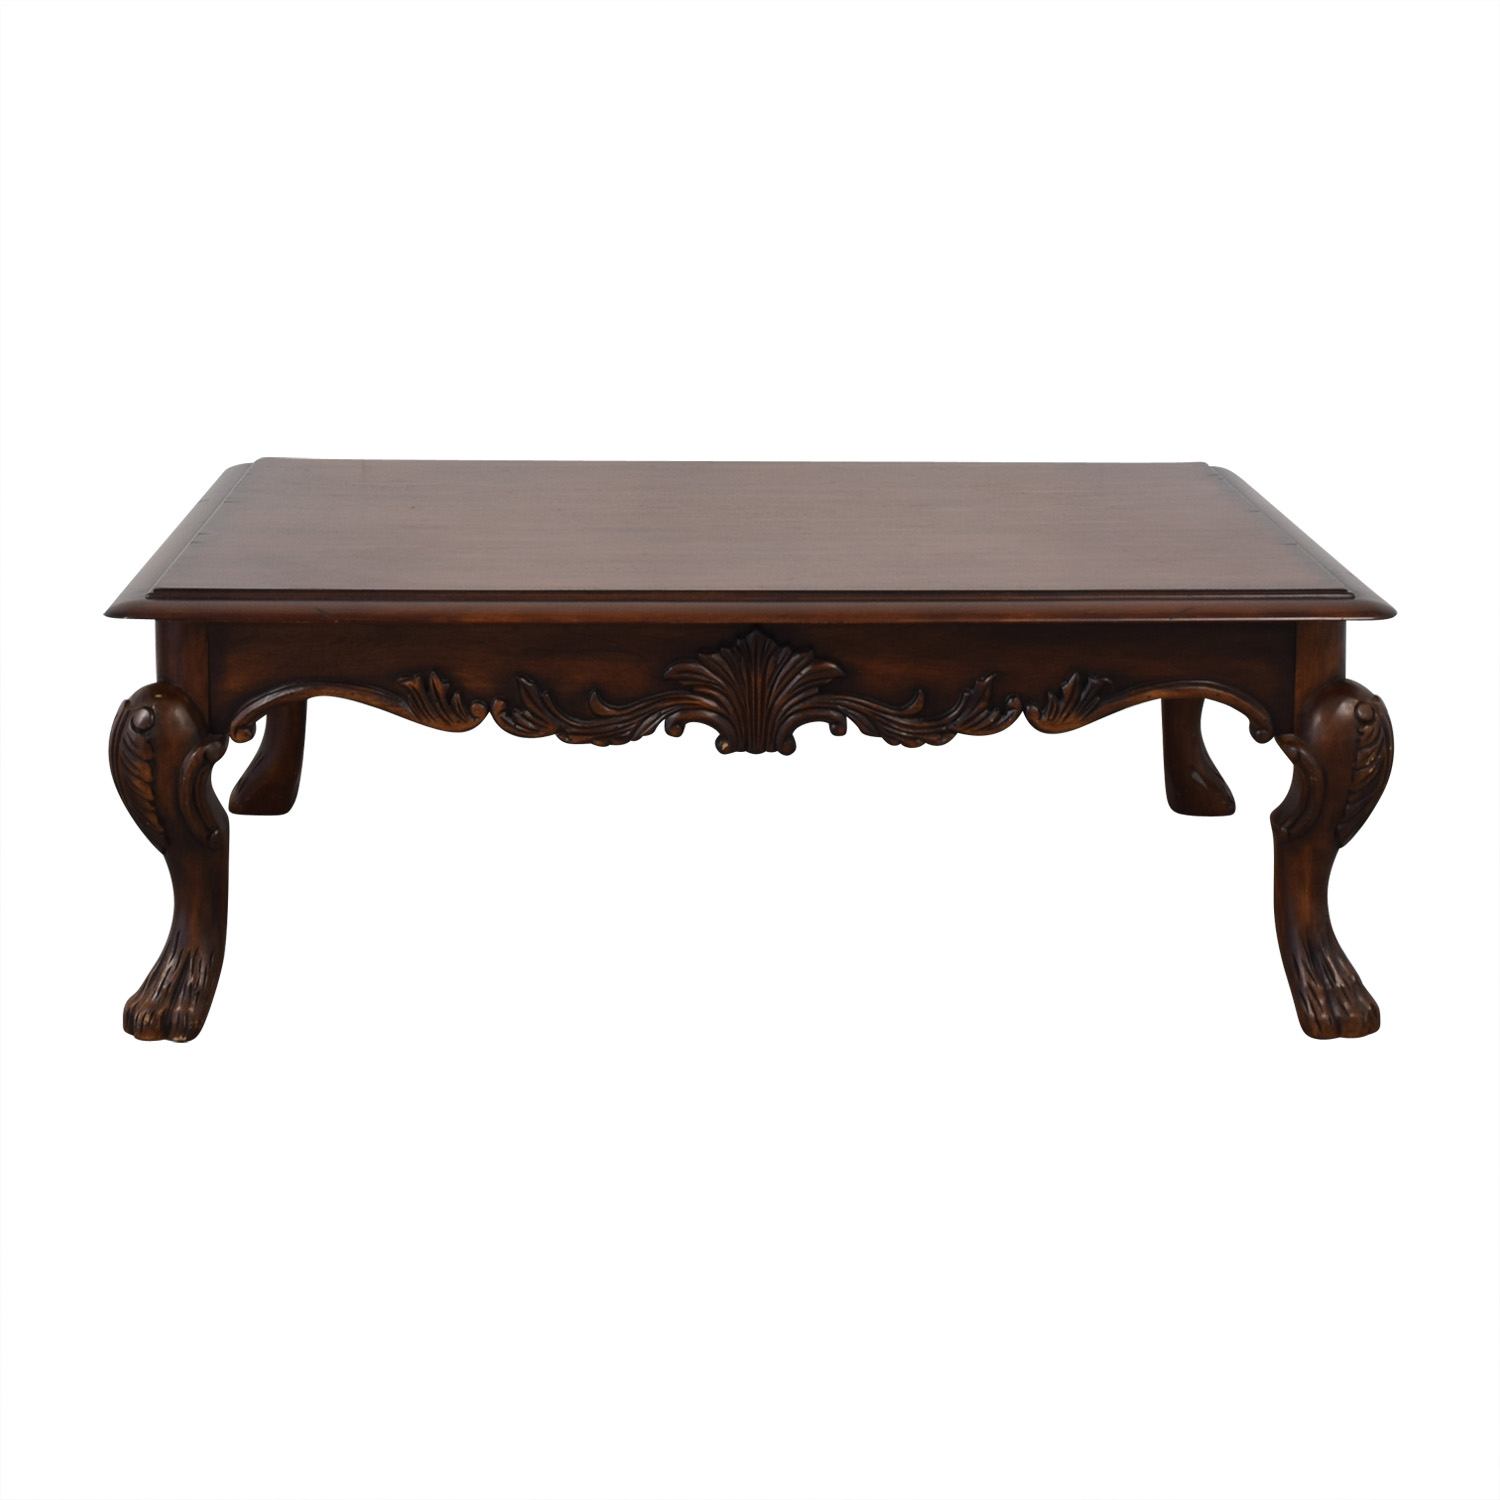 Ethan Allen Ethan Allen Wood Coffee Table nj